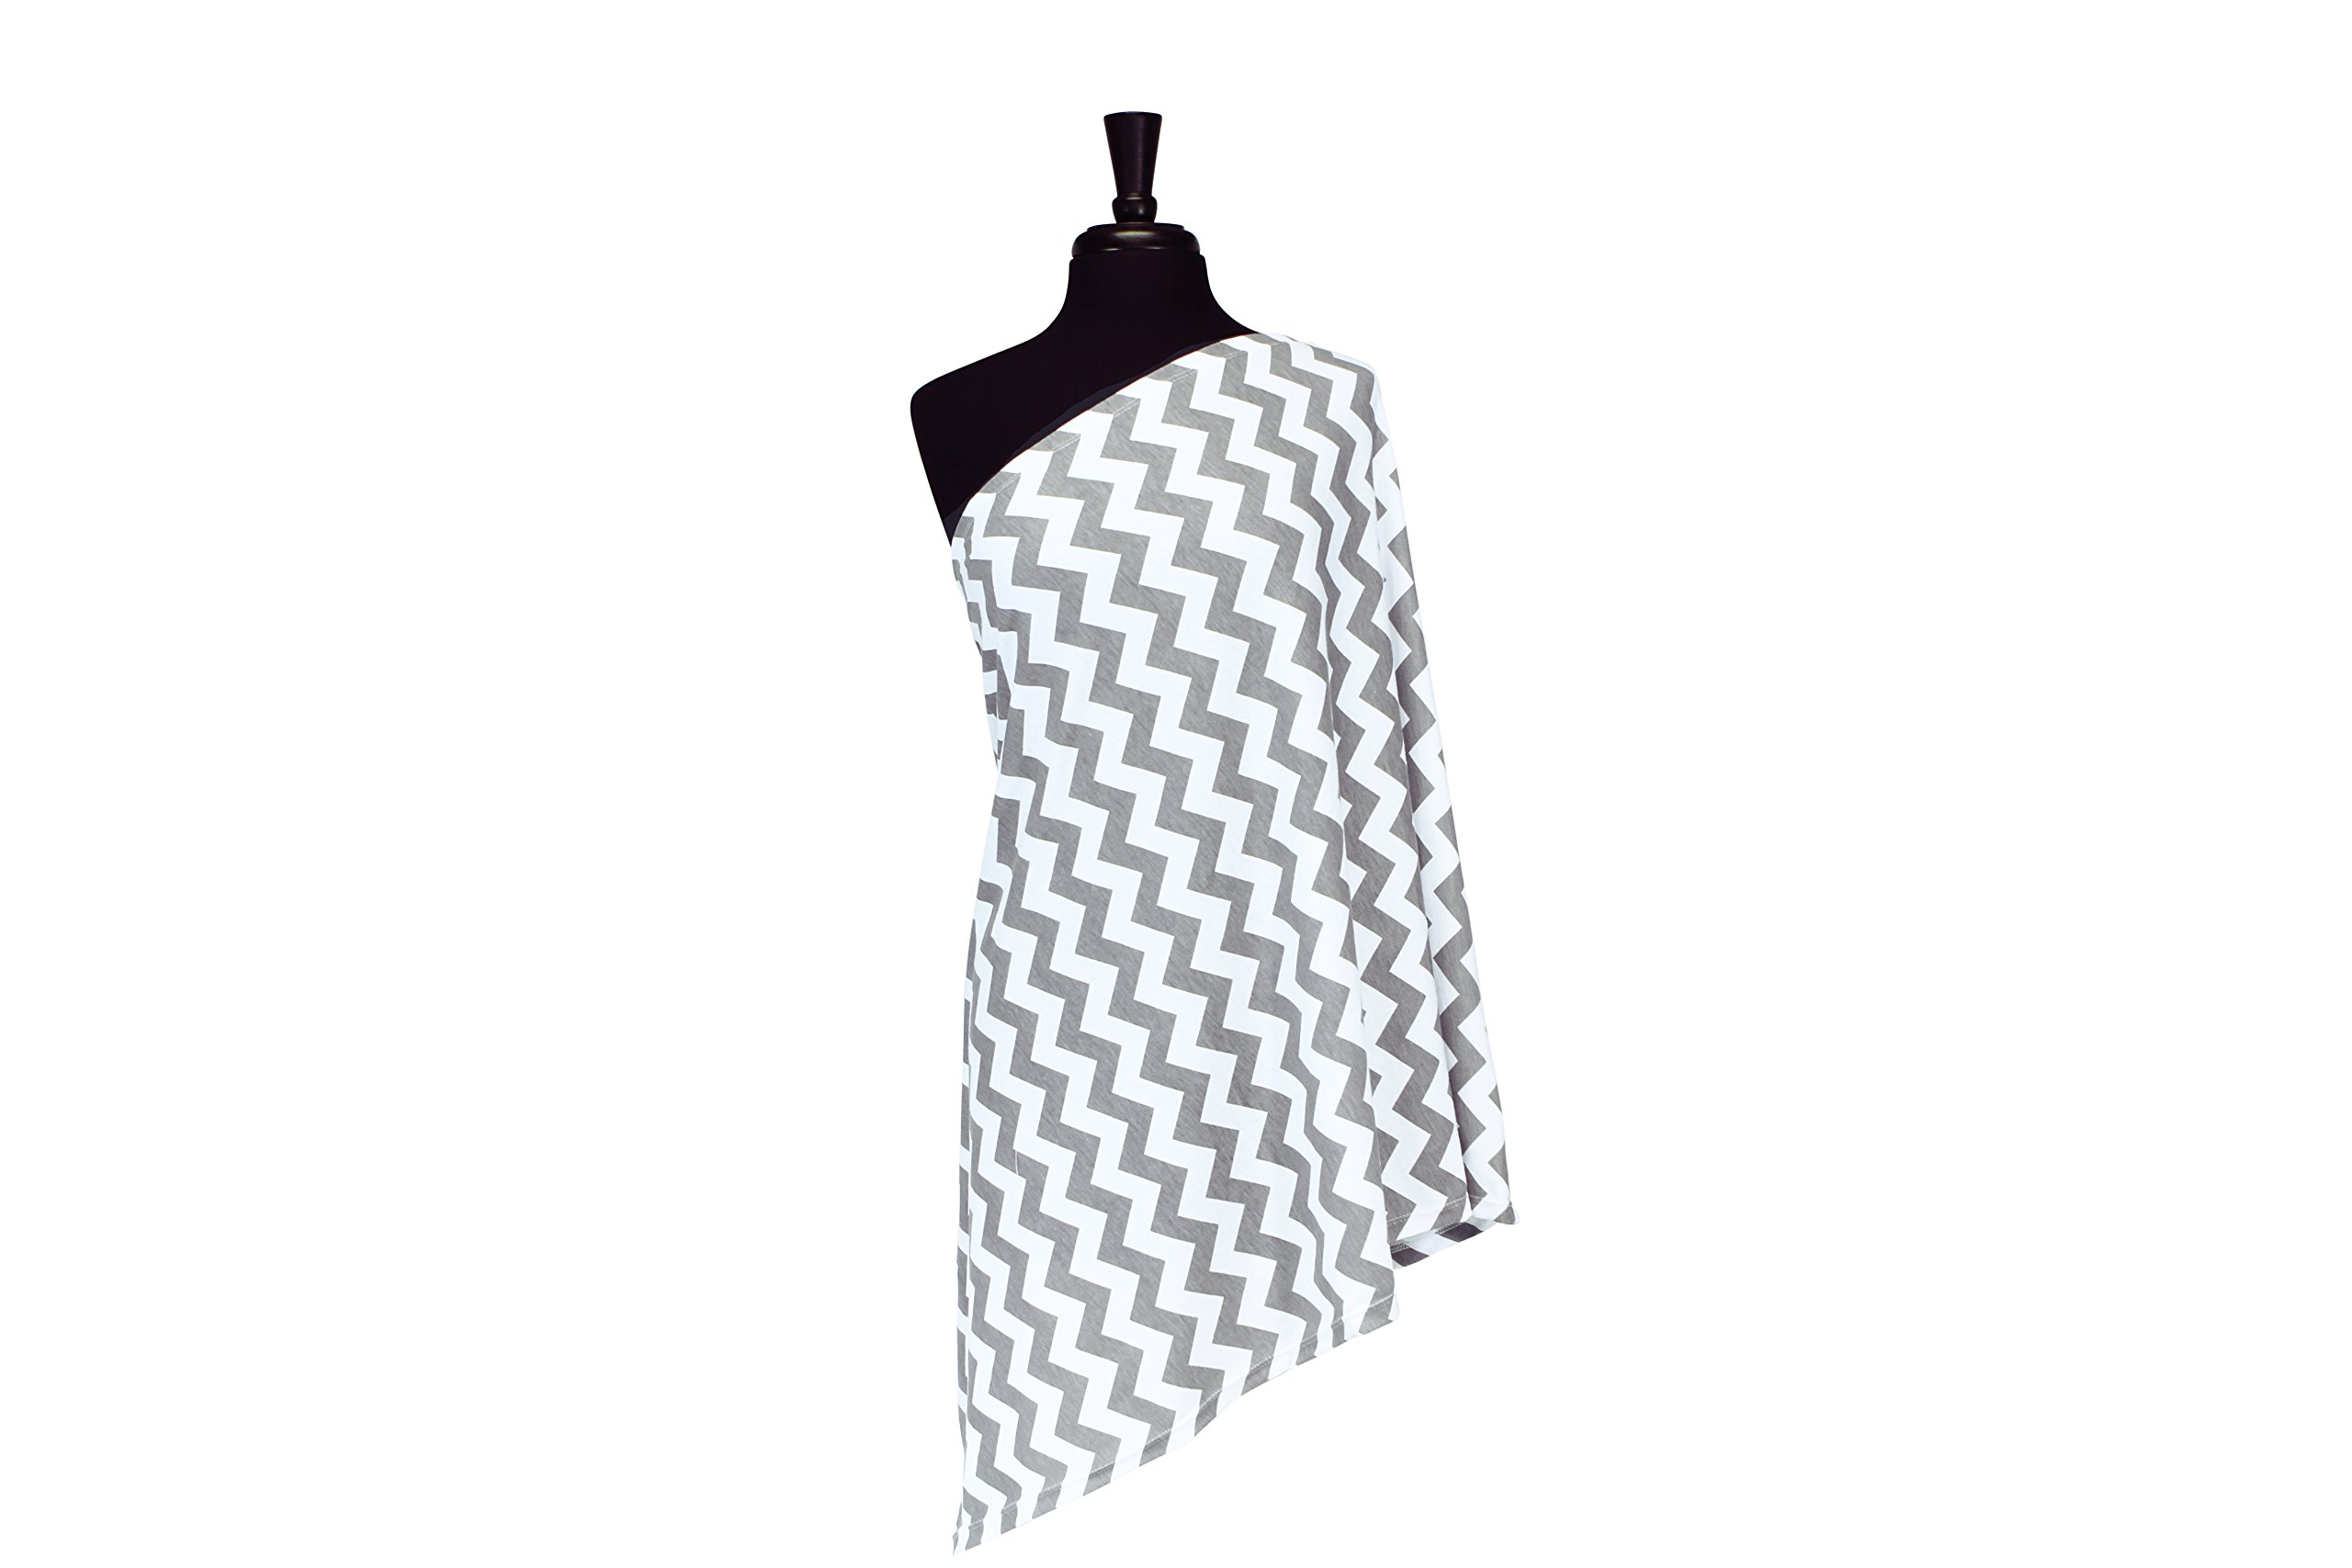 Itzy Ritzy Breastfeeding Cover and Infinity Nursing Scarf - Nursing Cover Can Be Worn as a Scarf and Provides Full Coverage While Nursing Baby, Gray Chevron